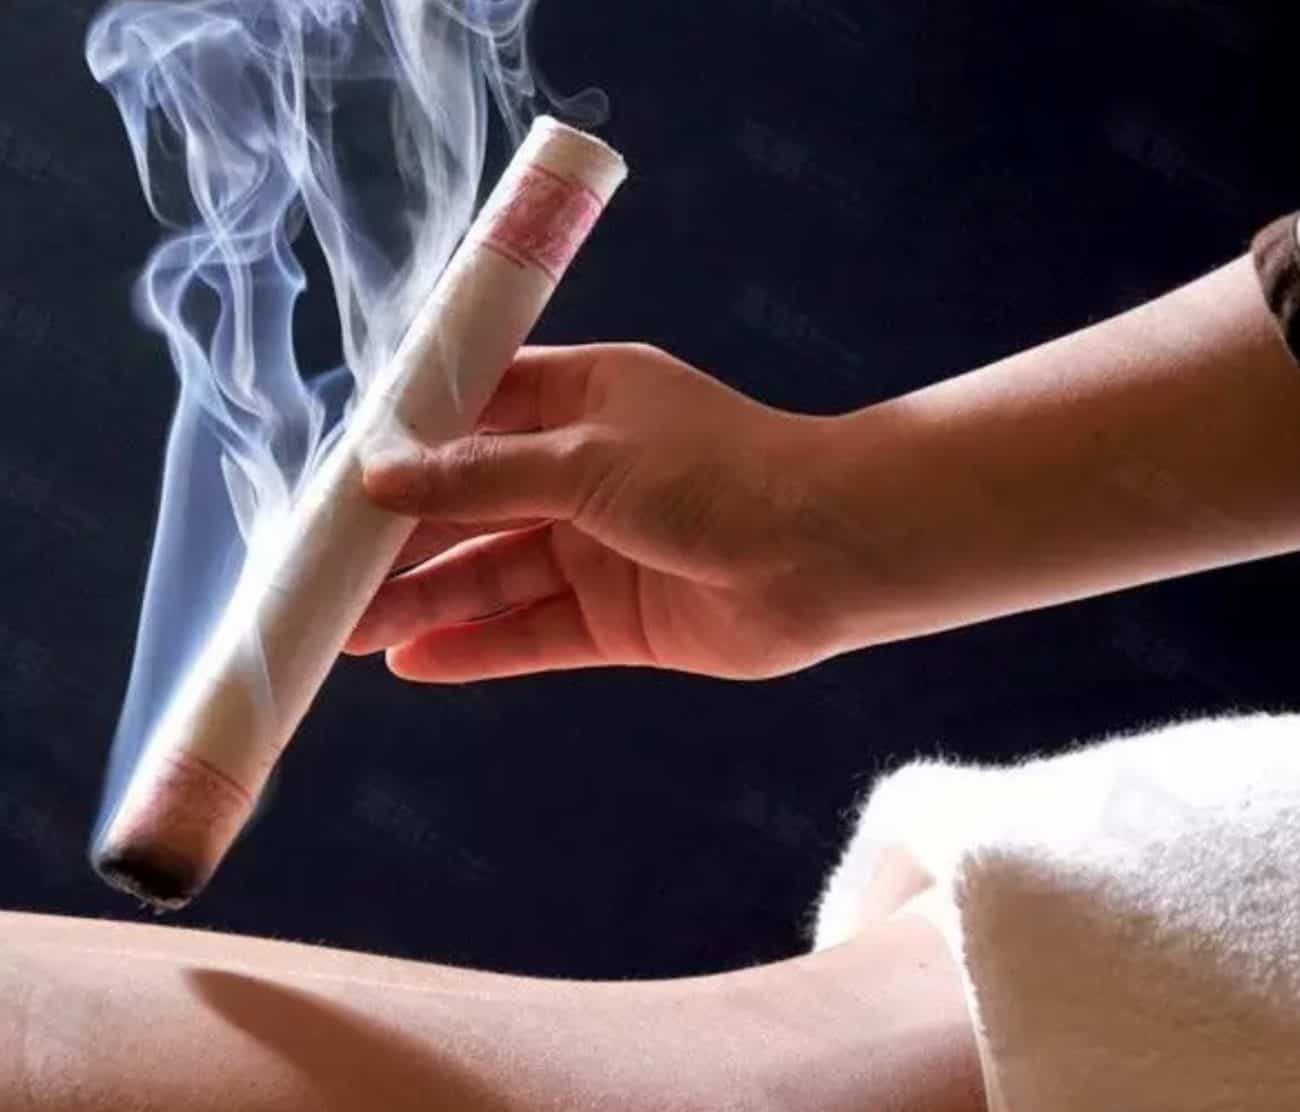 How to Do Moxibustion Therapy at Home